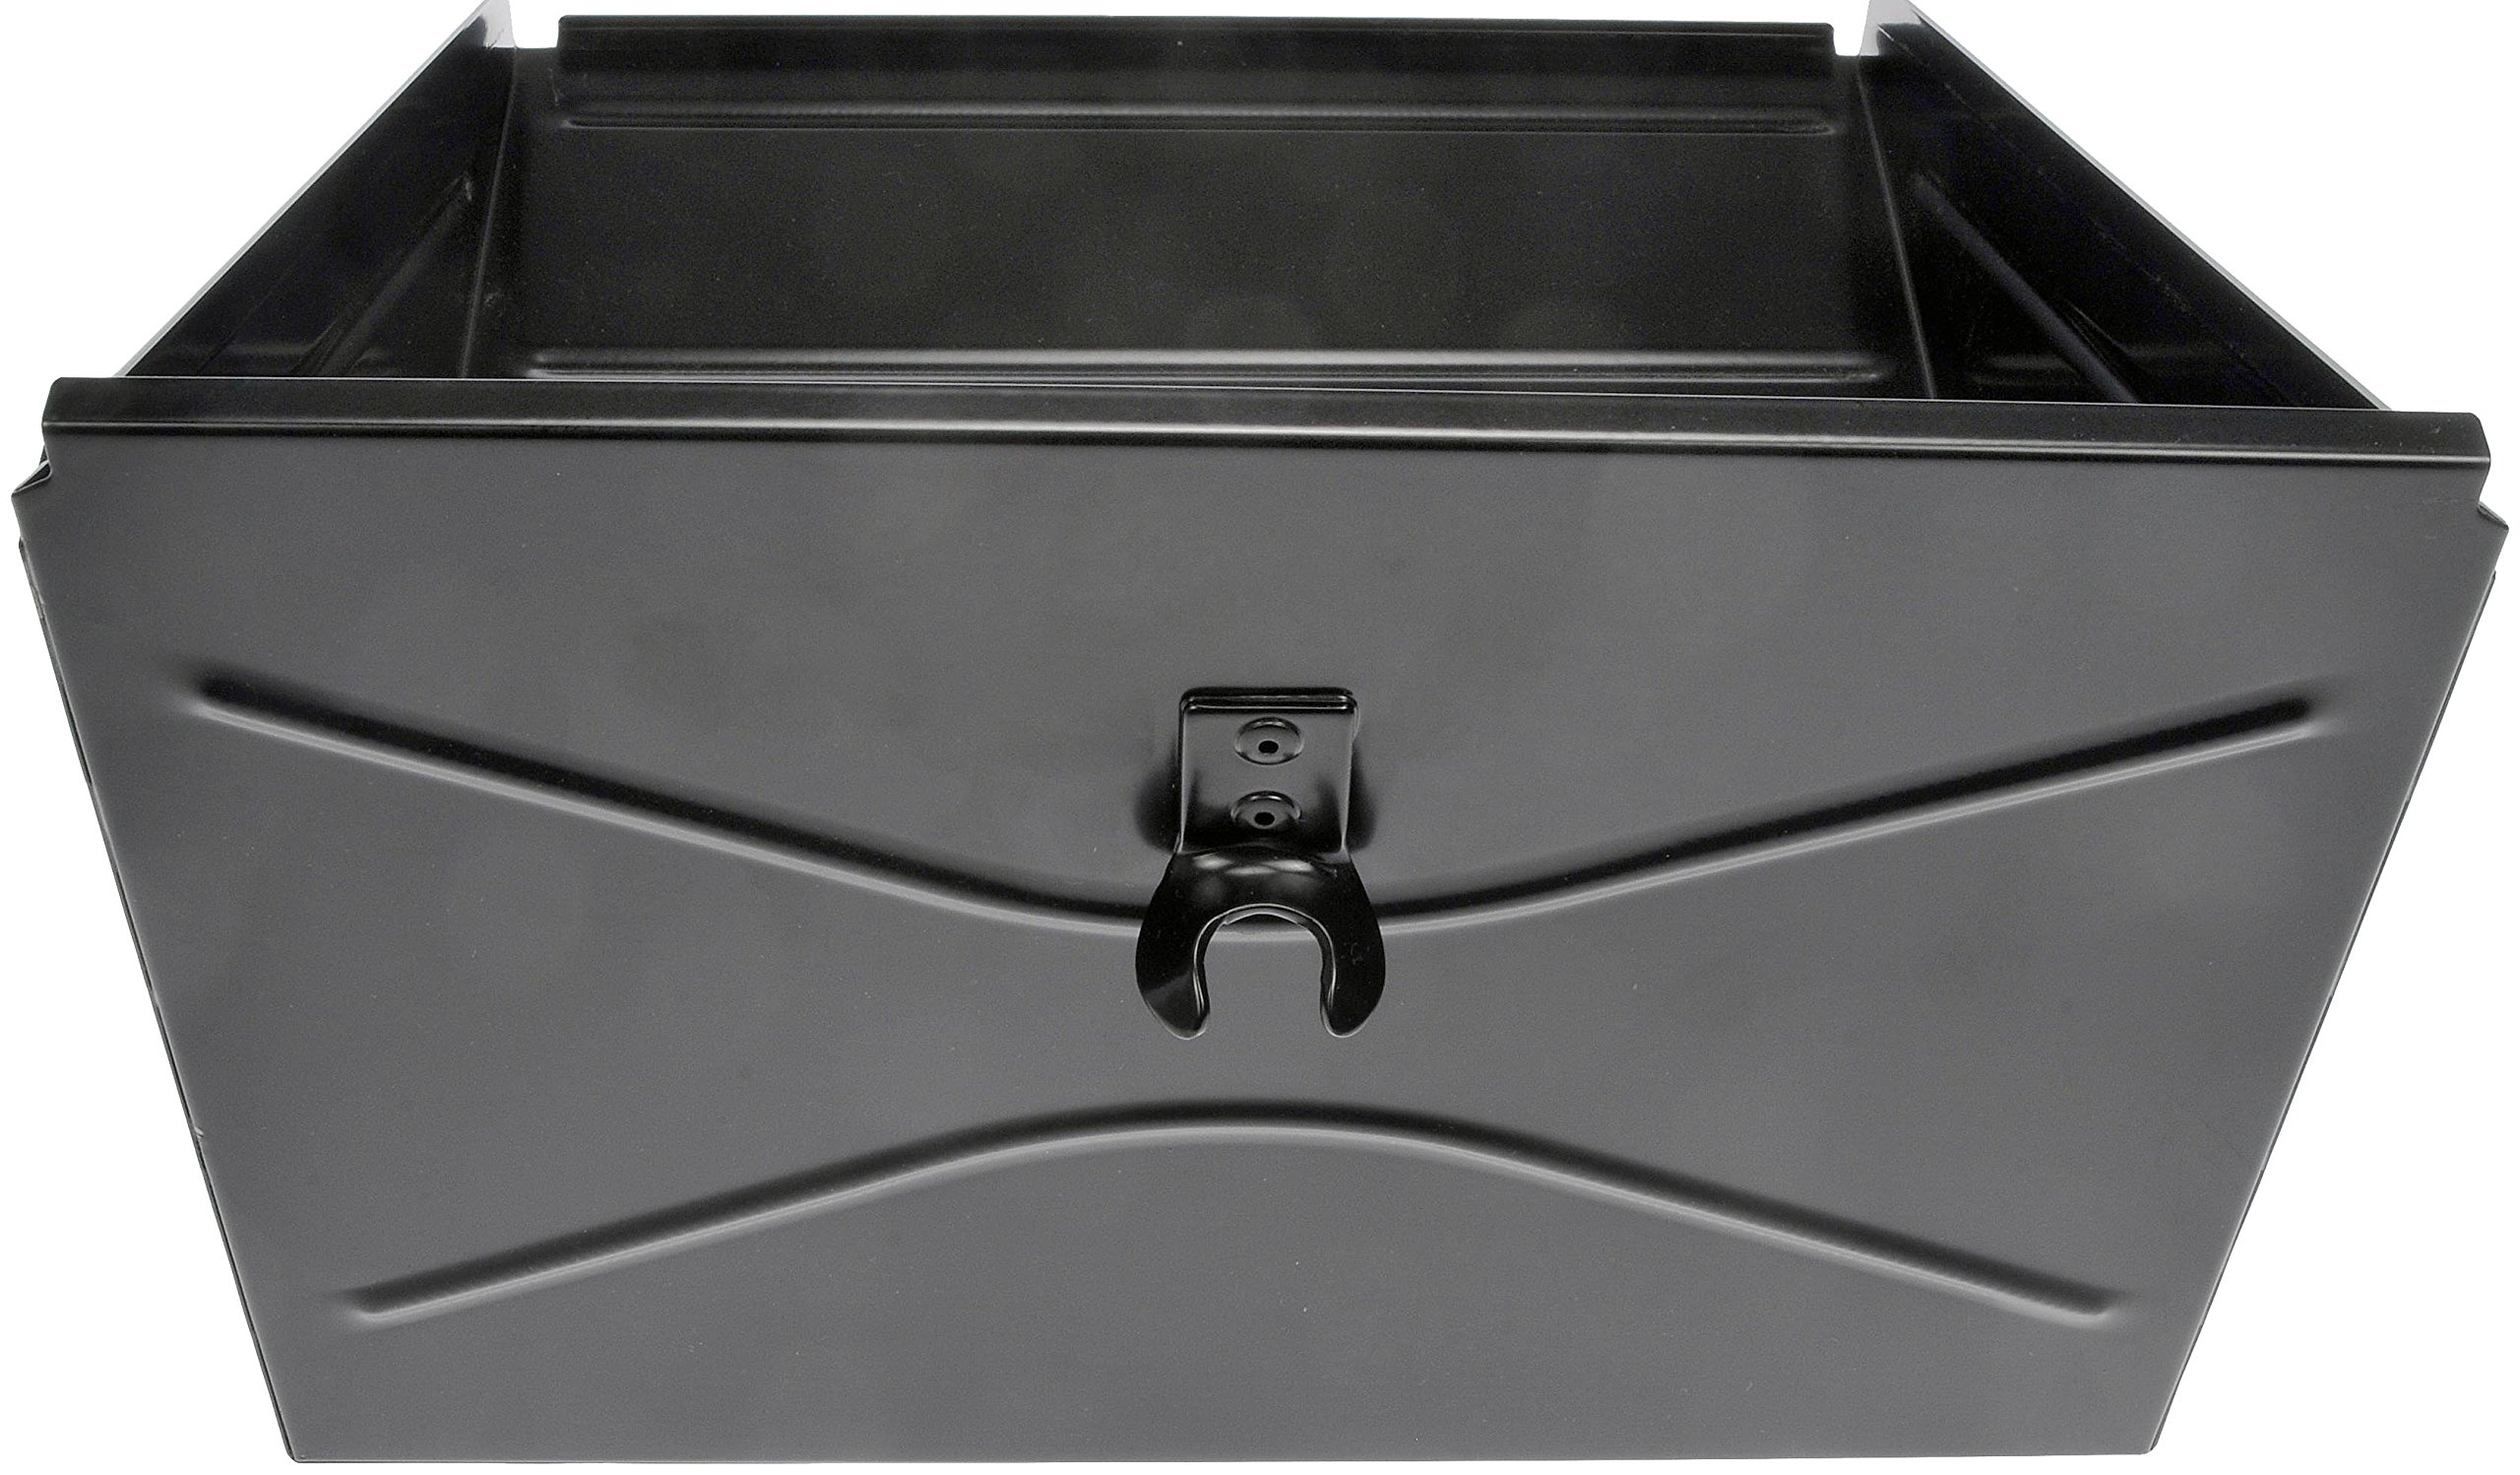 Dorman 242-5526 Battery Box Cover Assembly by Dorman (Image #2)